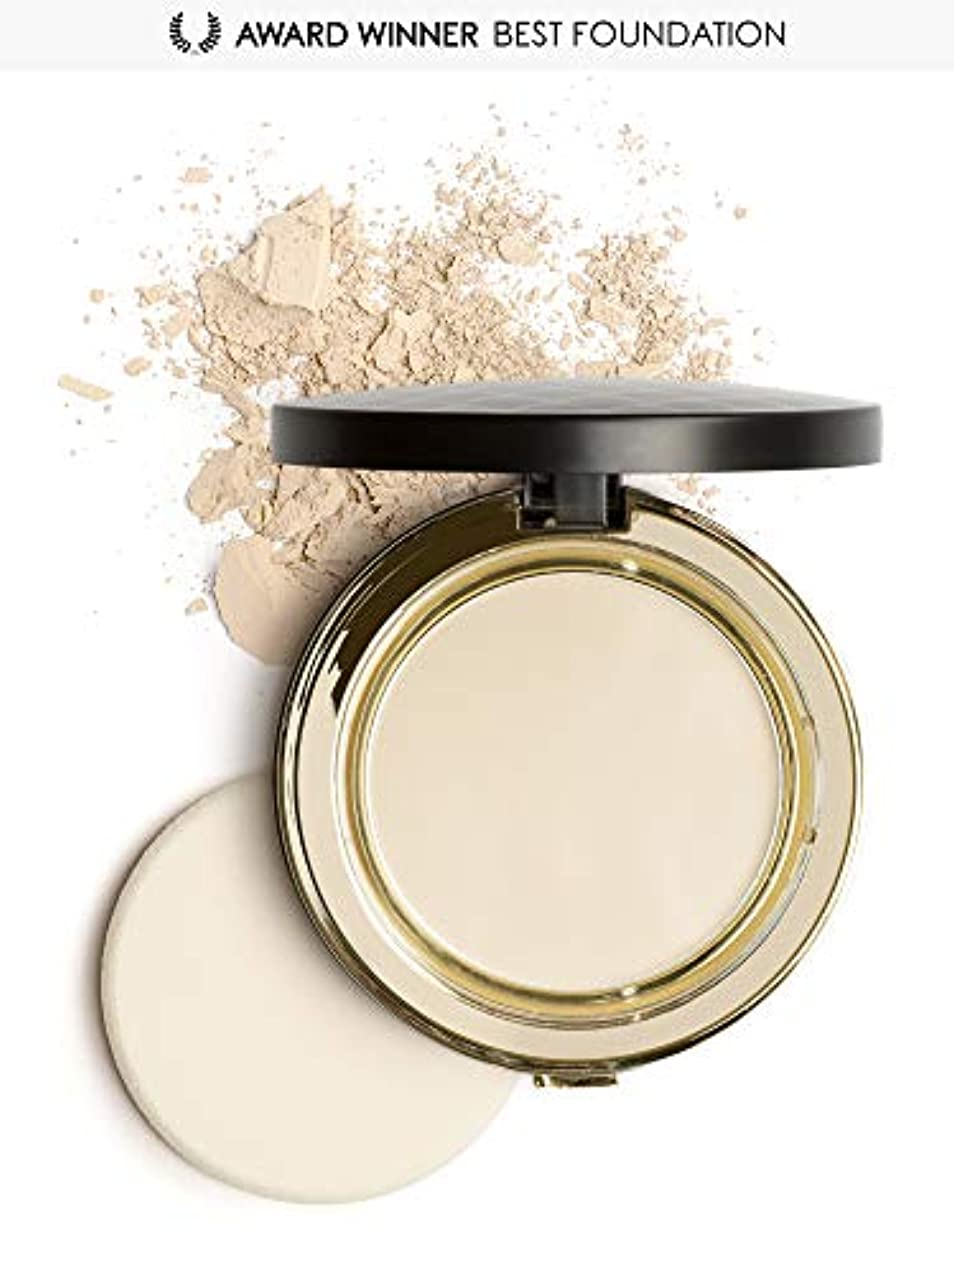 故障主張するカフェテリアMirenesse Cosmetics Skin Clone Foundation Mineral Face Powder SPF15 13g/0.46oz (21. Vienna) - AUTHENTIC